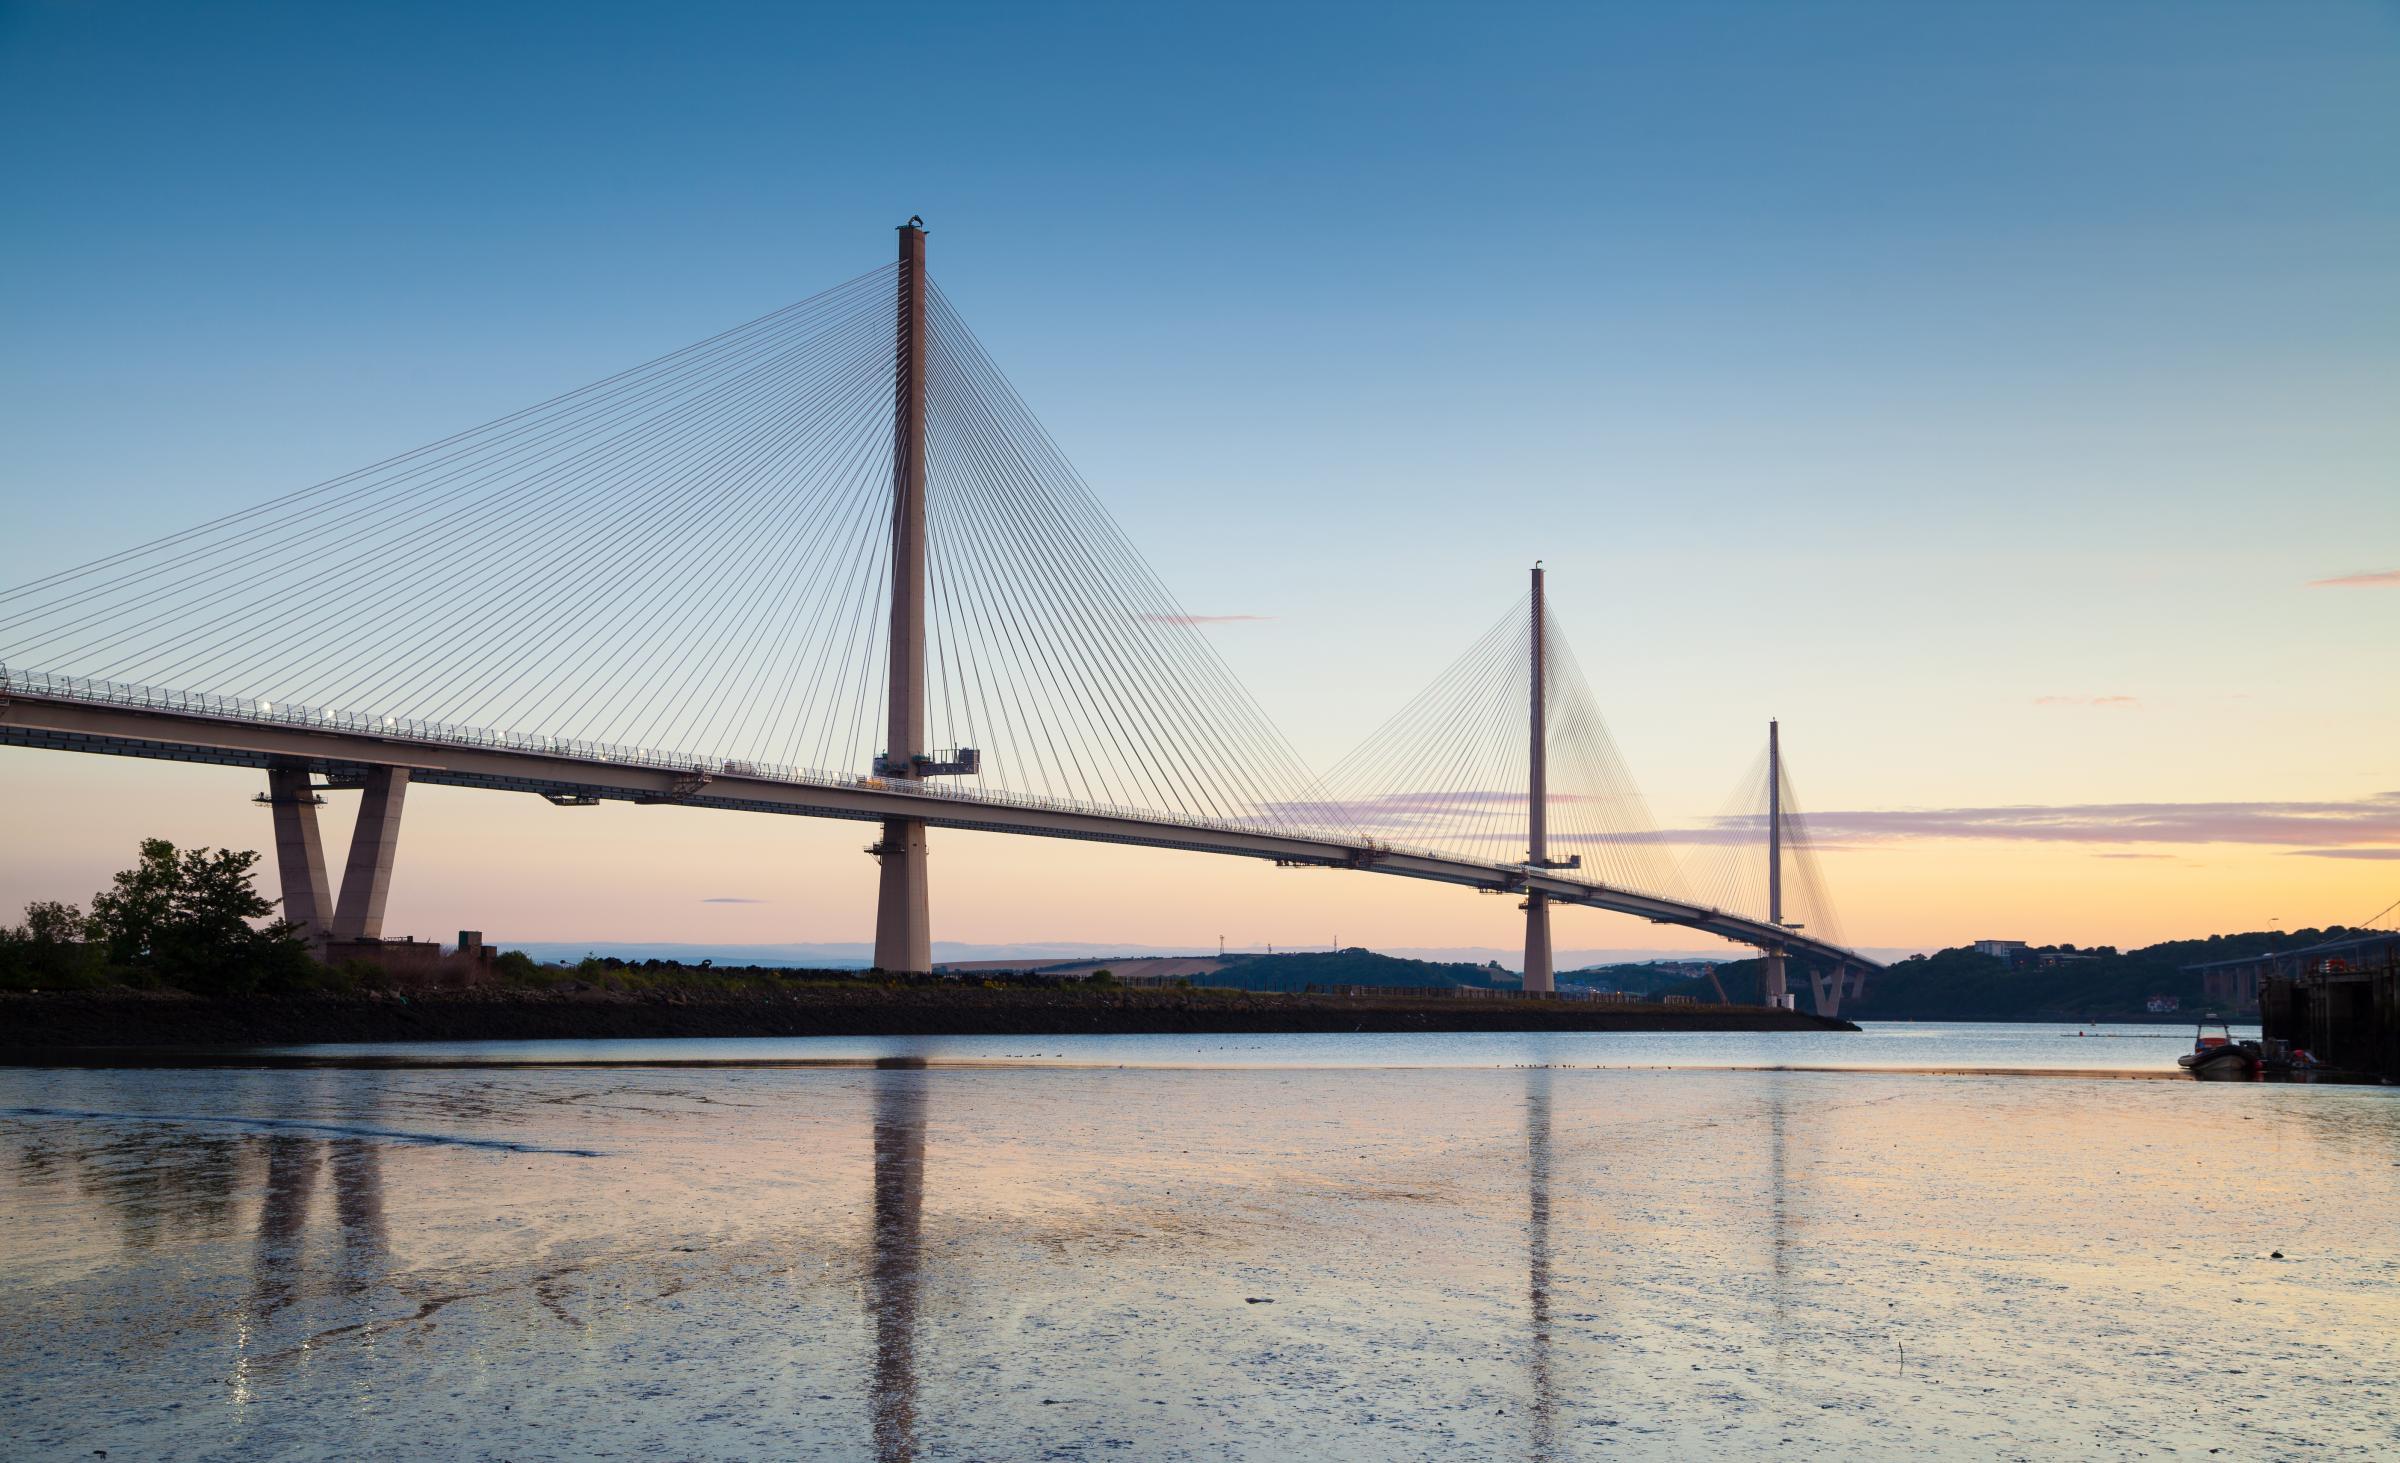 The Scottish Government has overseen a world-class project – the Queensferry Crossing